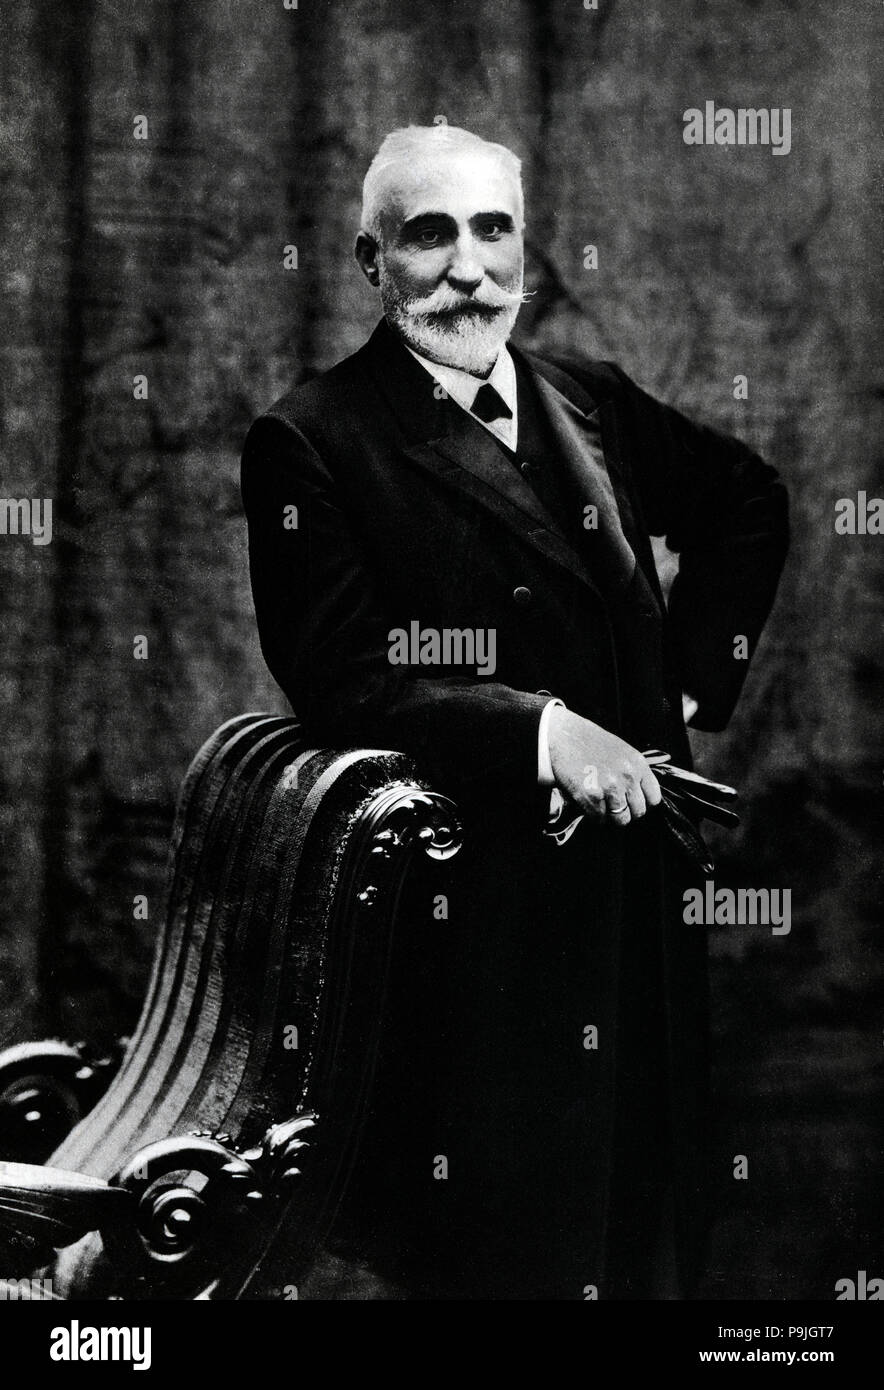 Antonio Maura y Montaner (Palma de Mallorca, 1853-Torrelodones, 1925), Spanish lawyer and politician. Statesman, five times Prime Minister, father of Gabriel and Miguel Maura, began his political career within liberalism and was identified with the regeneration. - Stock Image